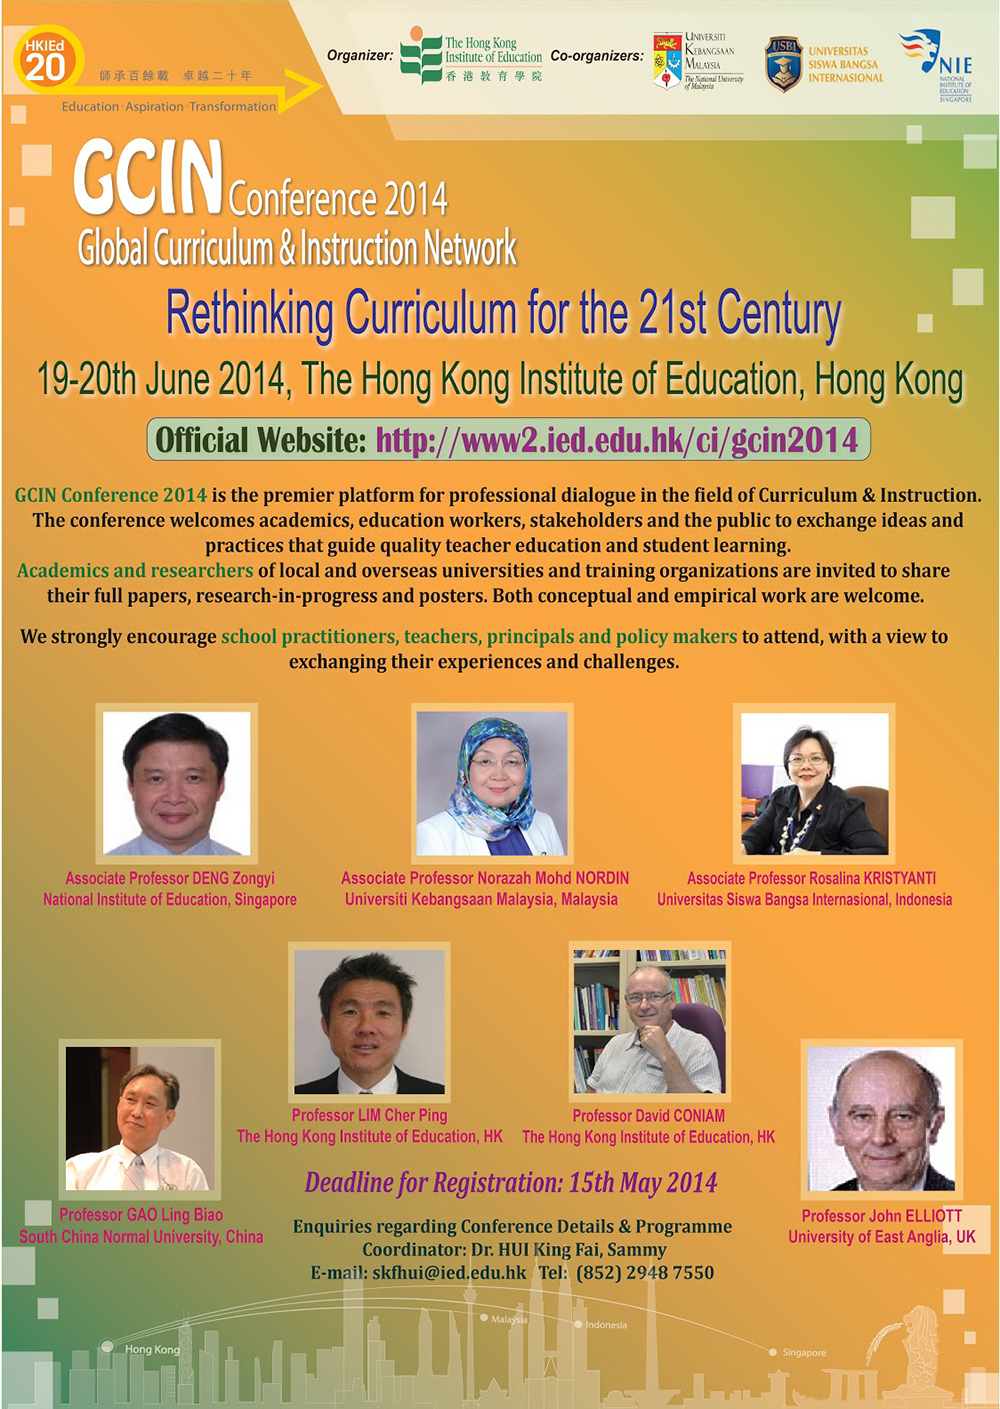 GCIN (Global Curriculum & Instruction Network) Conference 2014 -  Rethinking Curriculum for the 21st Century